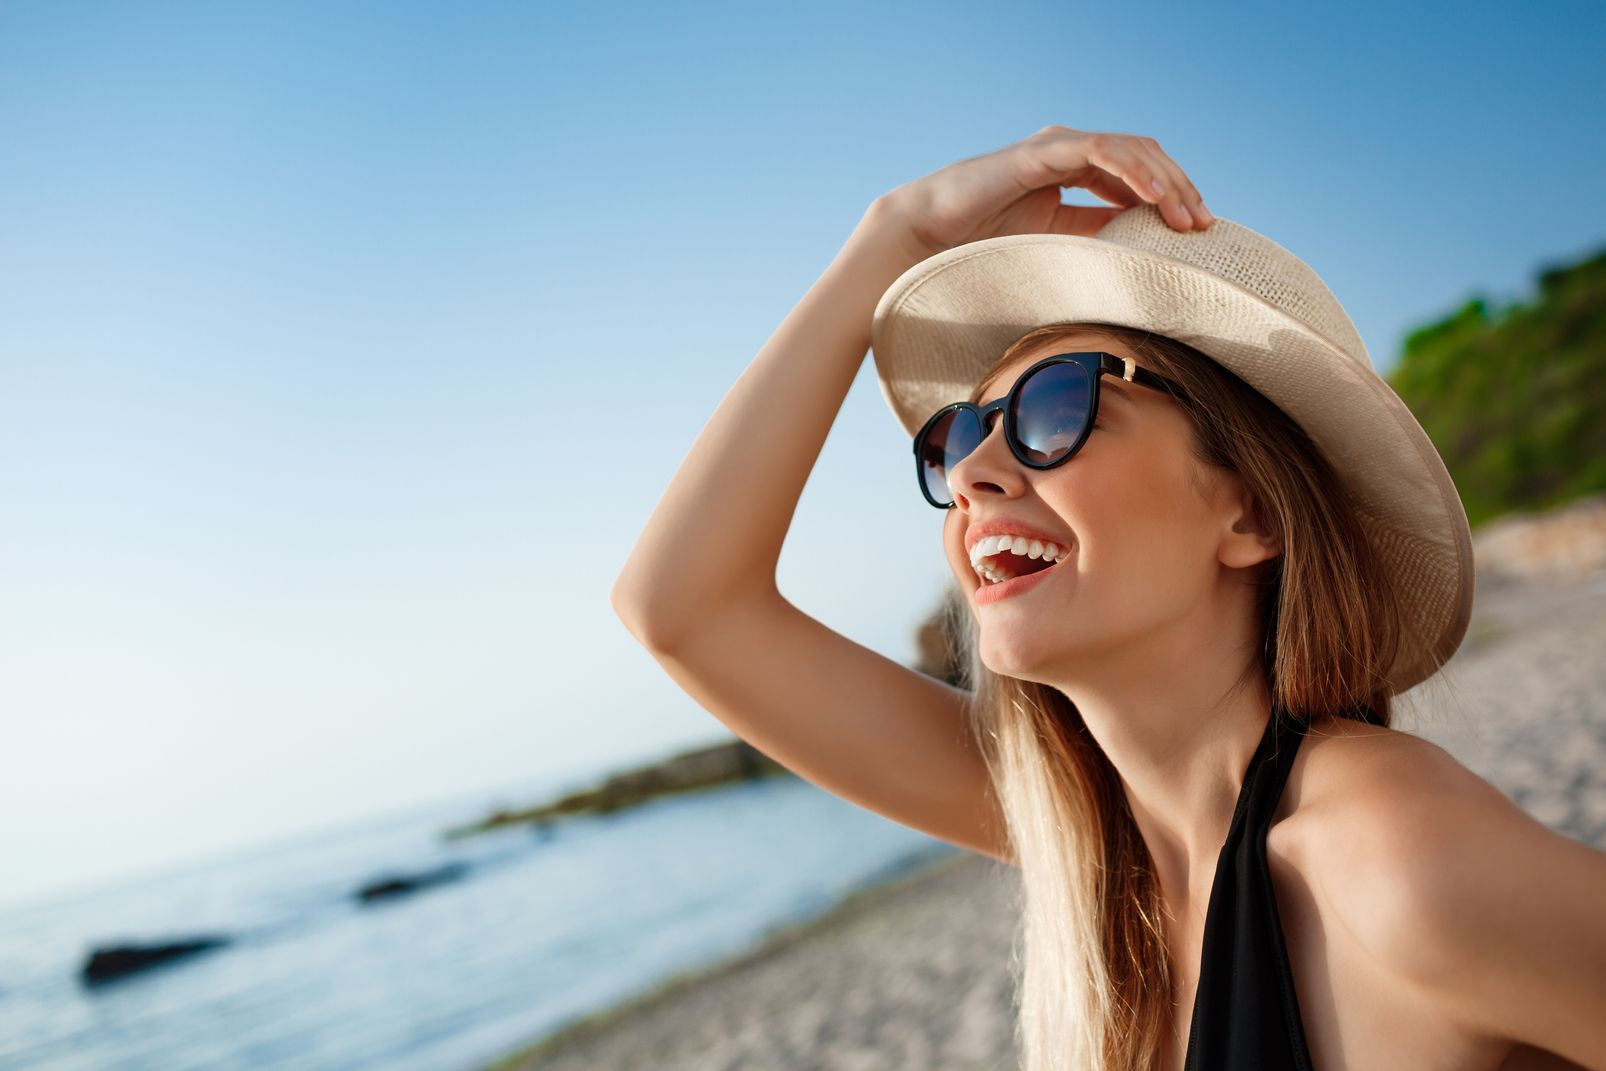 Top Dermatologist Tips on How to Protect Your Skin during Dubai Summer